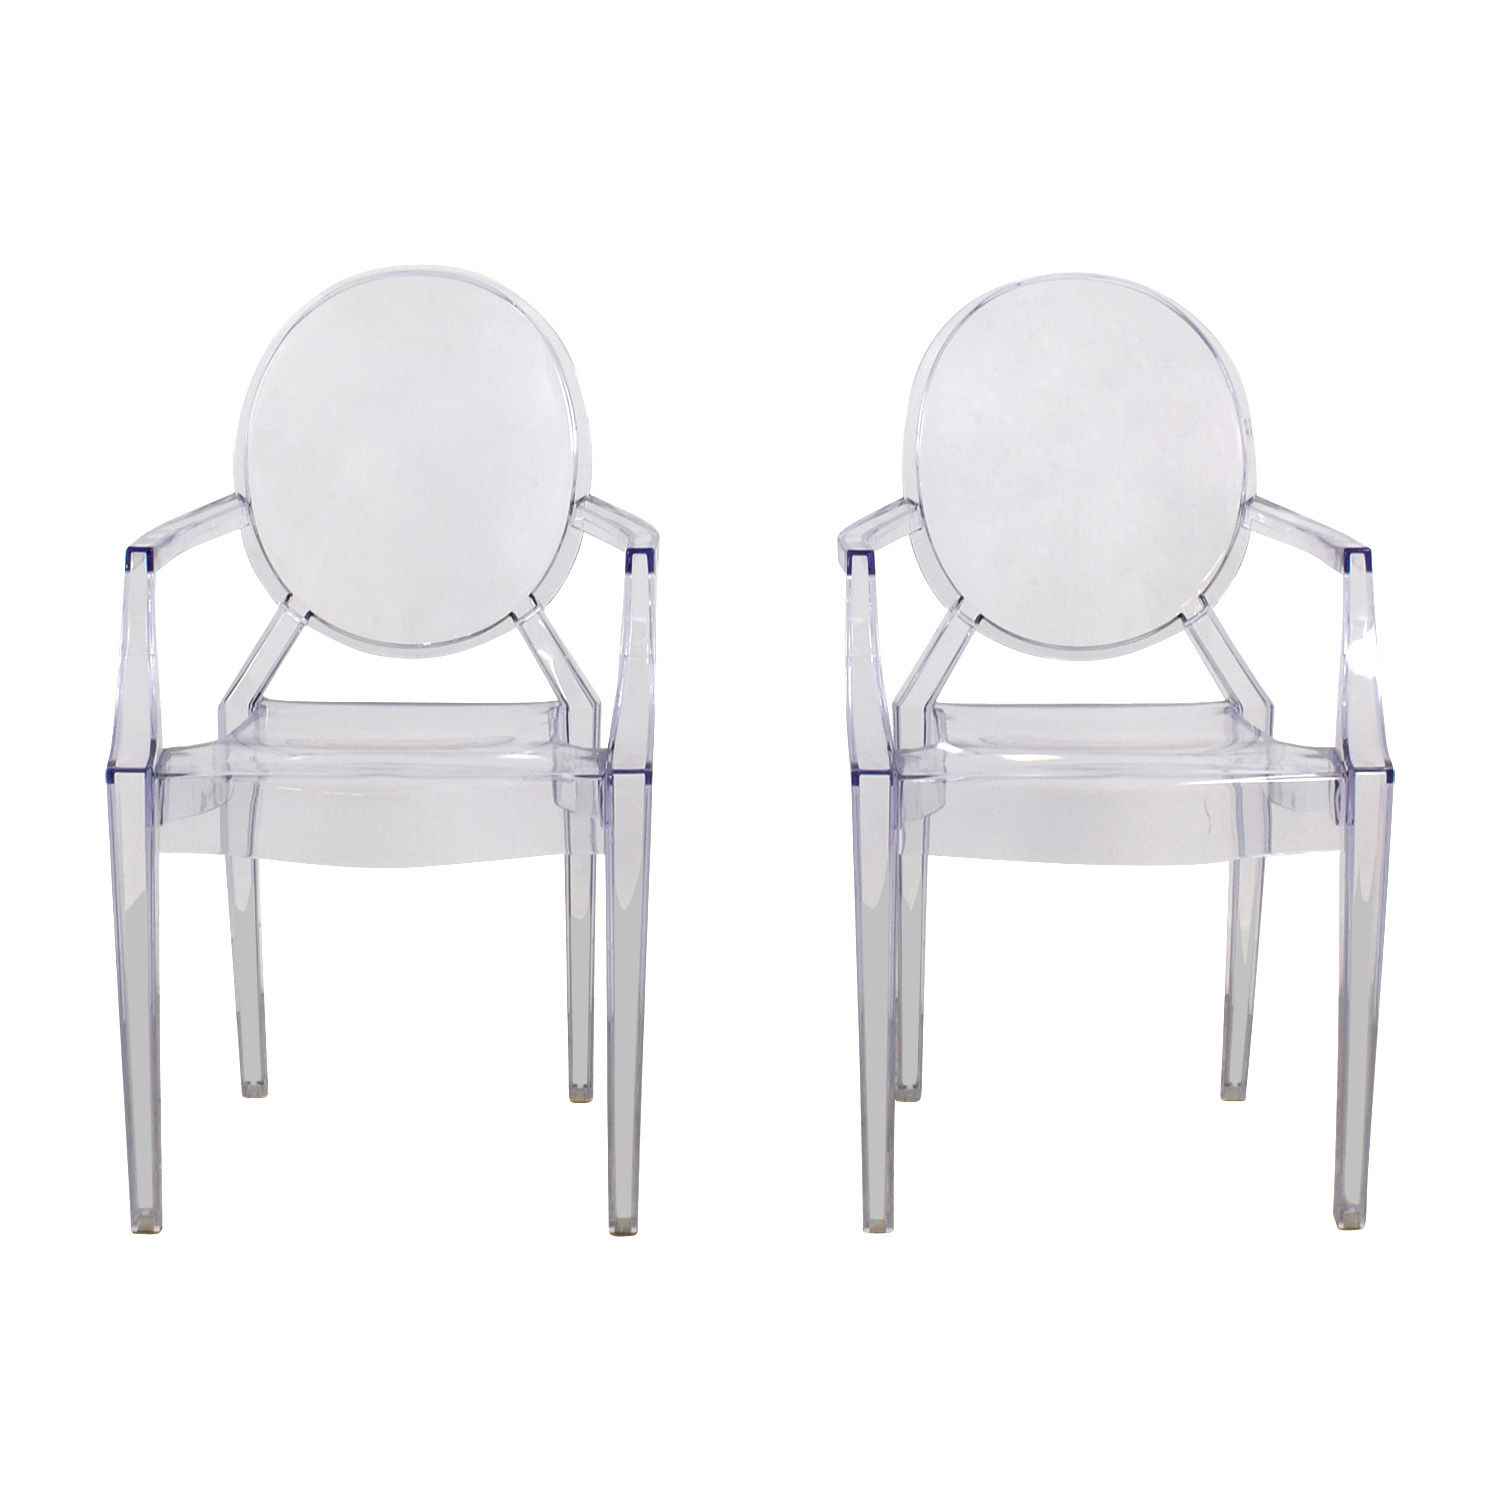 CB2 CB2 Acrylic Chairs Transparent